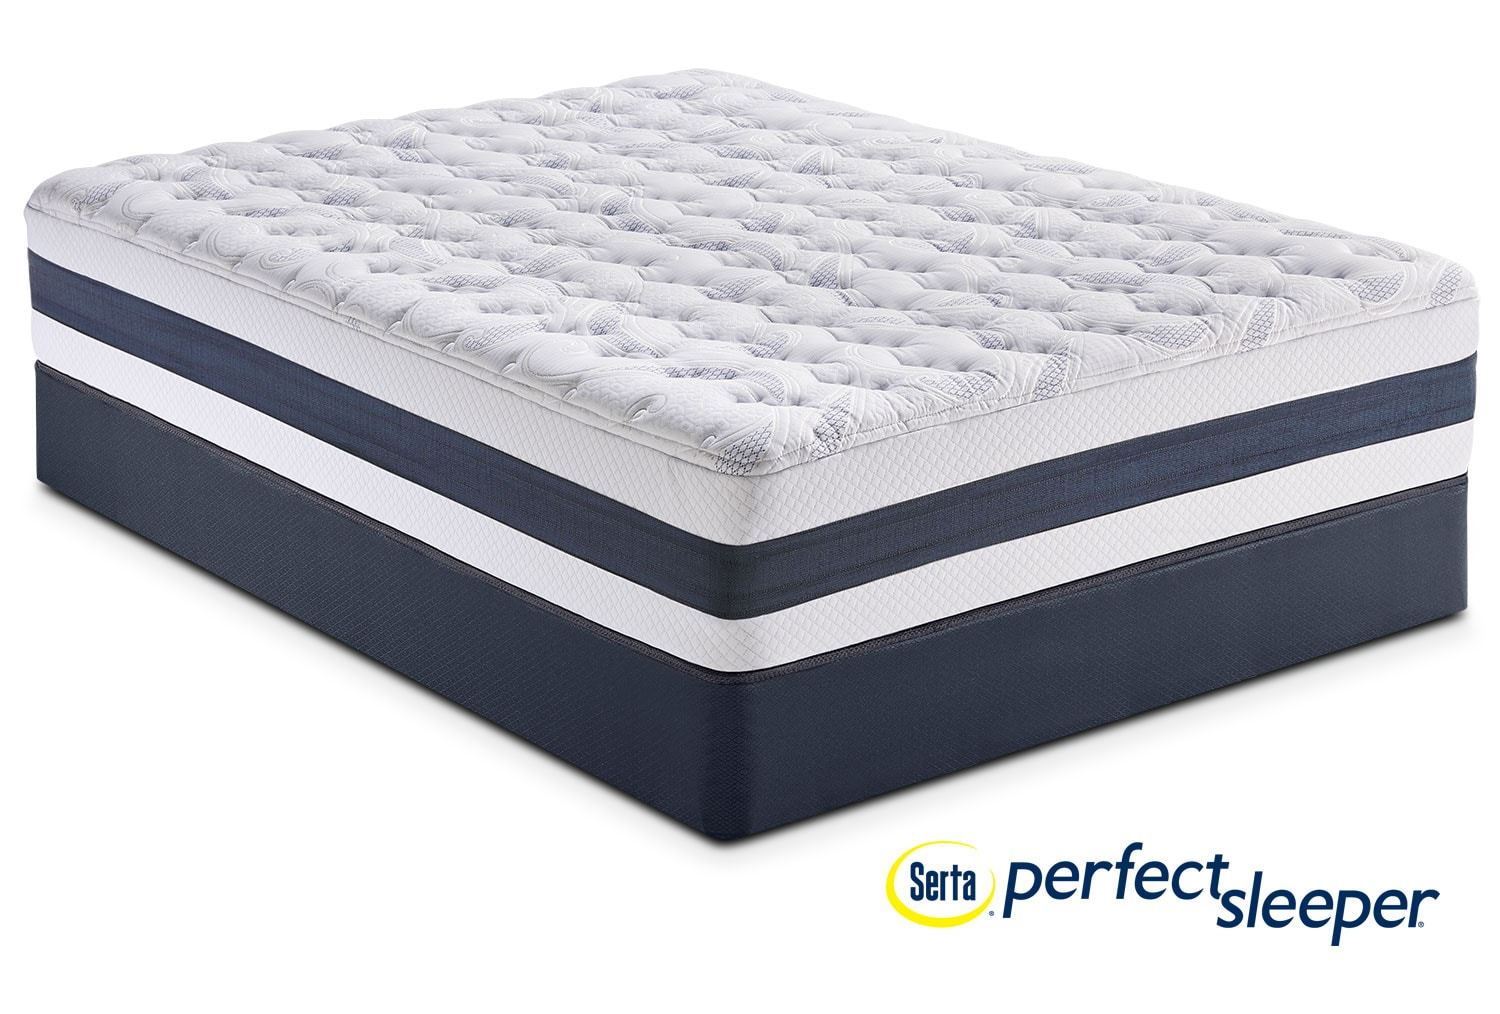 Mattresses and Bedding - Carson Ridge Queen Mattress and Split Foundation Set